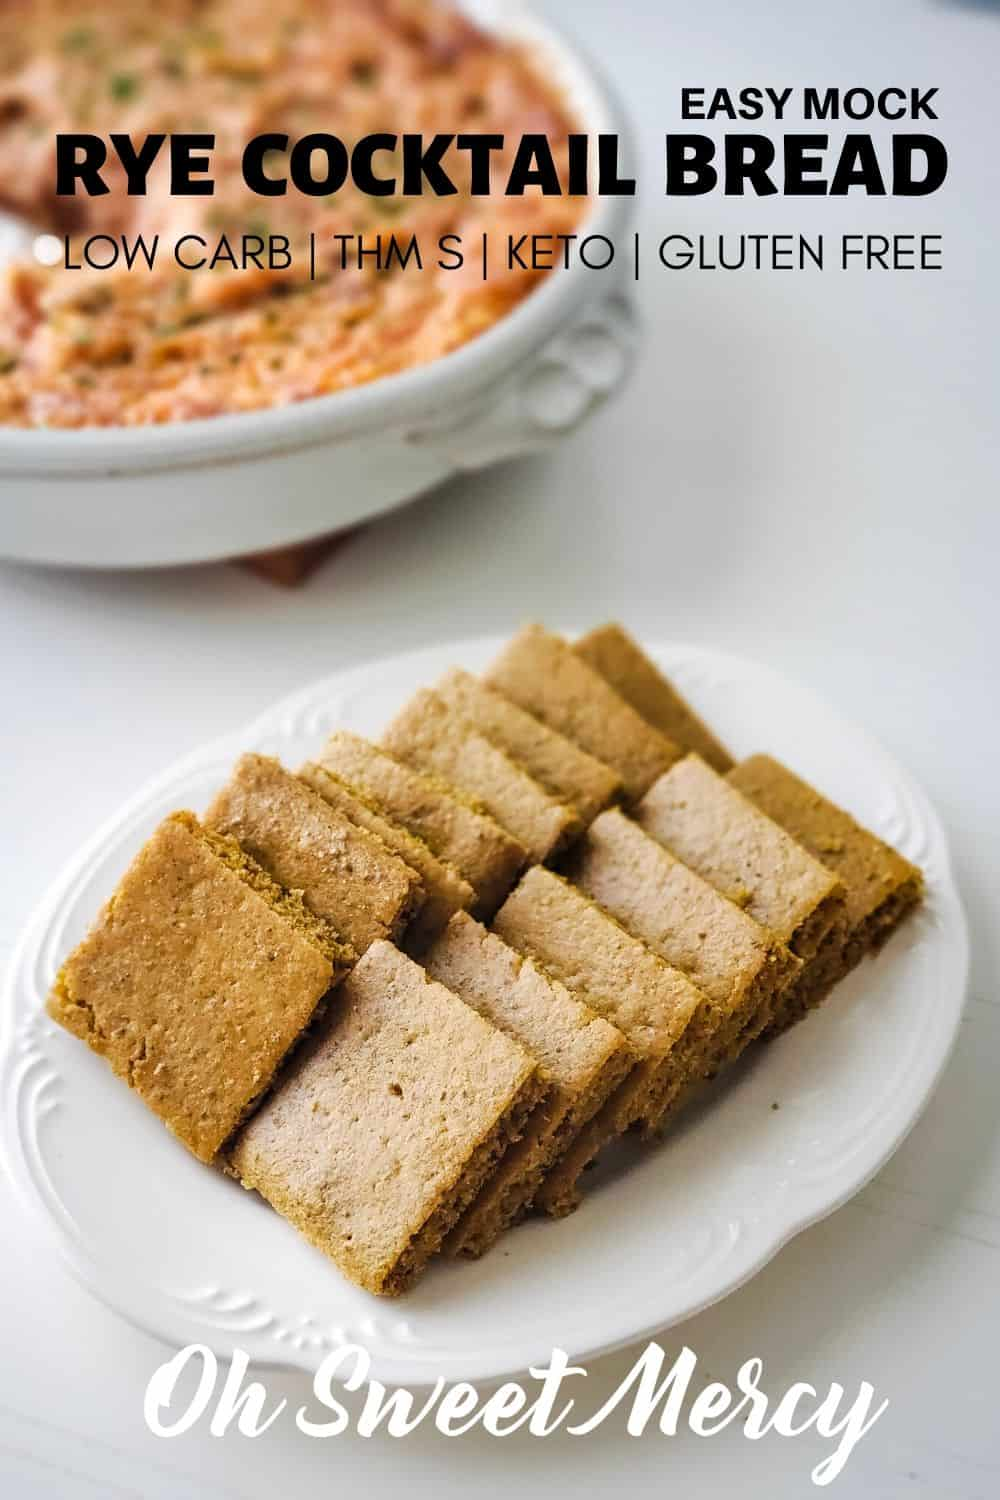 Super easy, low carb, Mock Rye Cocktail Bread is ready to eat in less than an hour. Perfect for parties, appetizers, and snacking. #thm #lowcarb #keto #glutenfree #ryebread